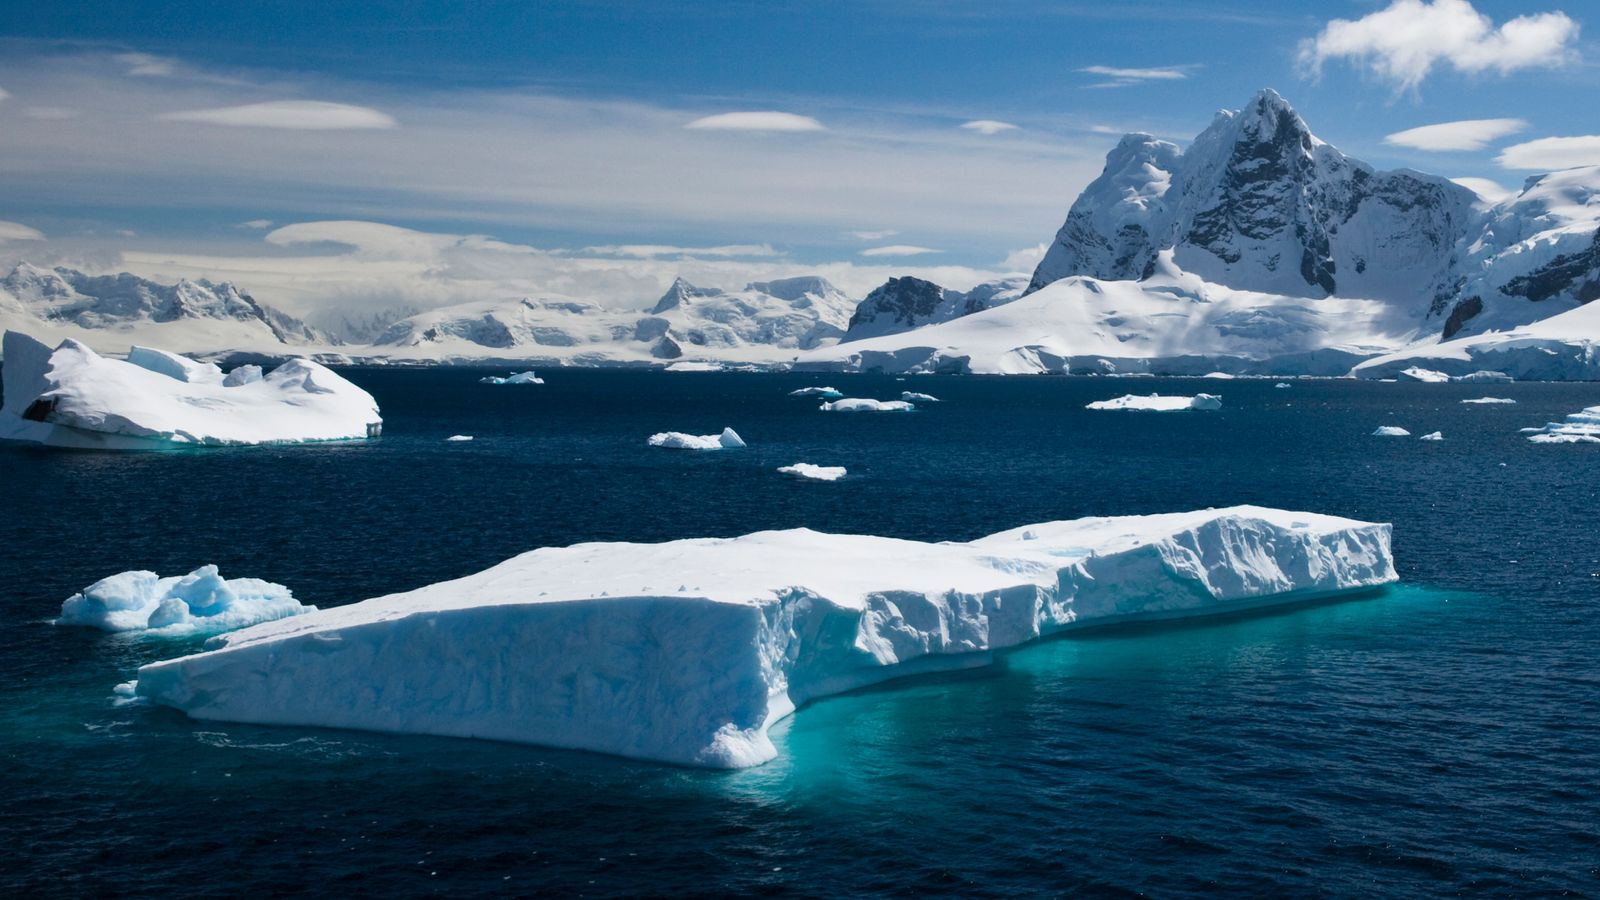 Antarctica faces growing threat as vital treaty comes under pressure - Sky News